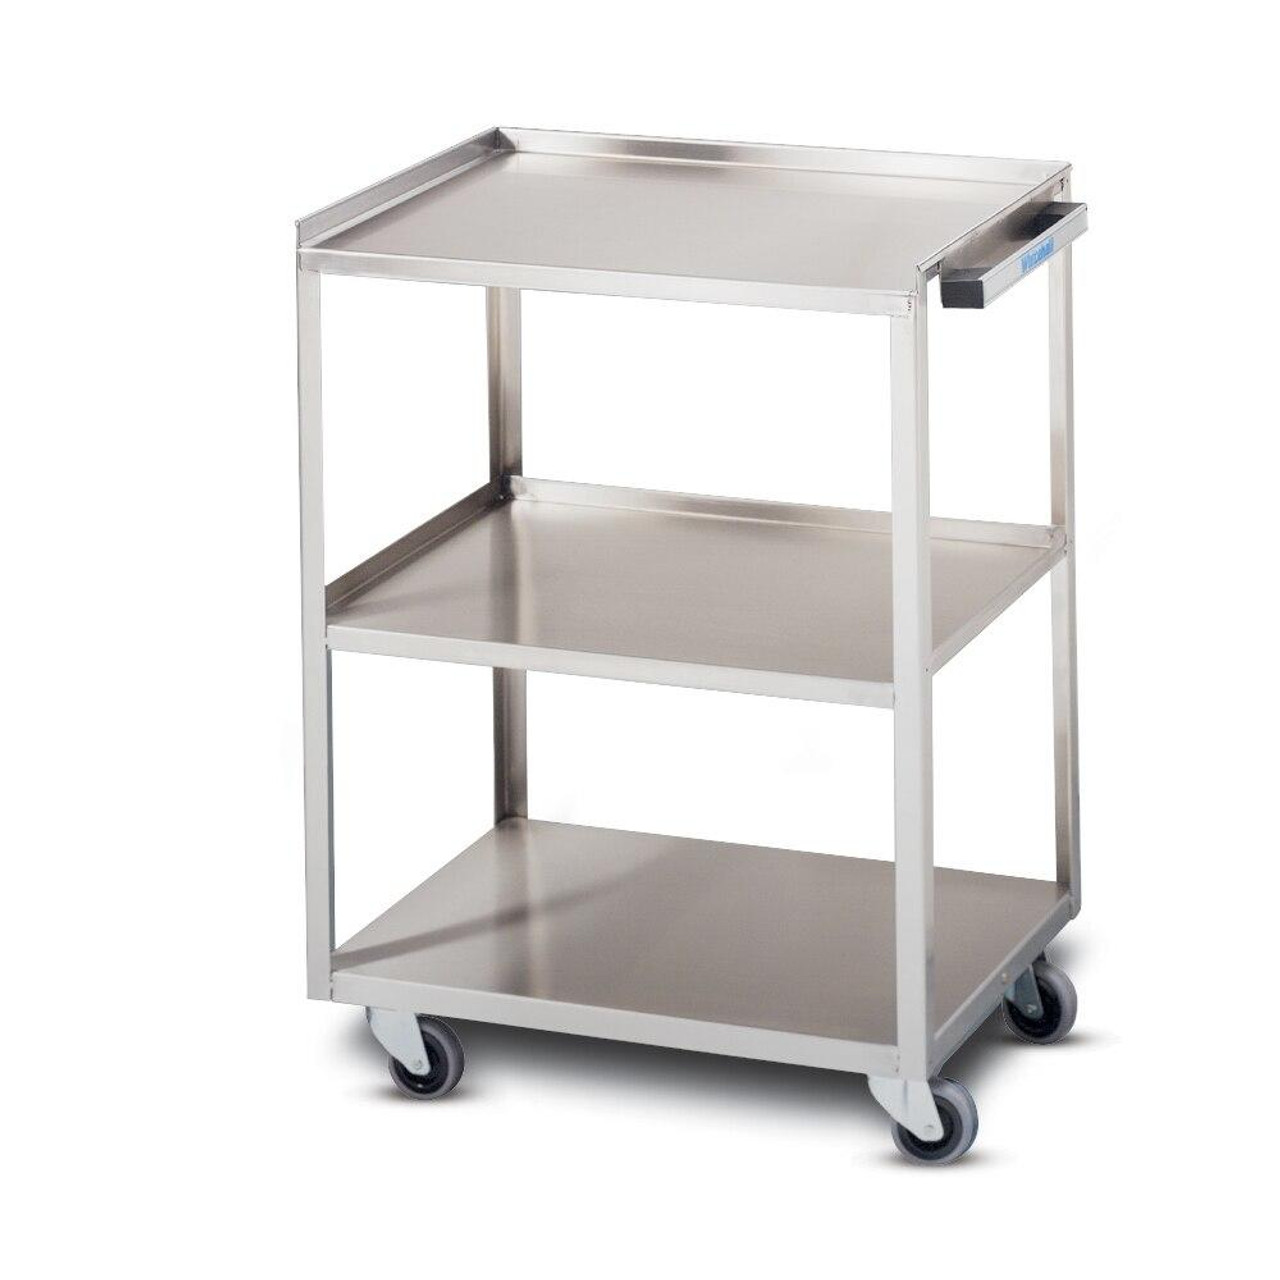 3 Shelf Stainless Steel Utility Cart Sourceortho Com